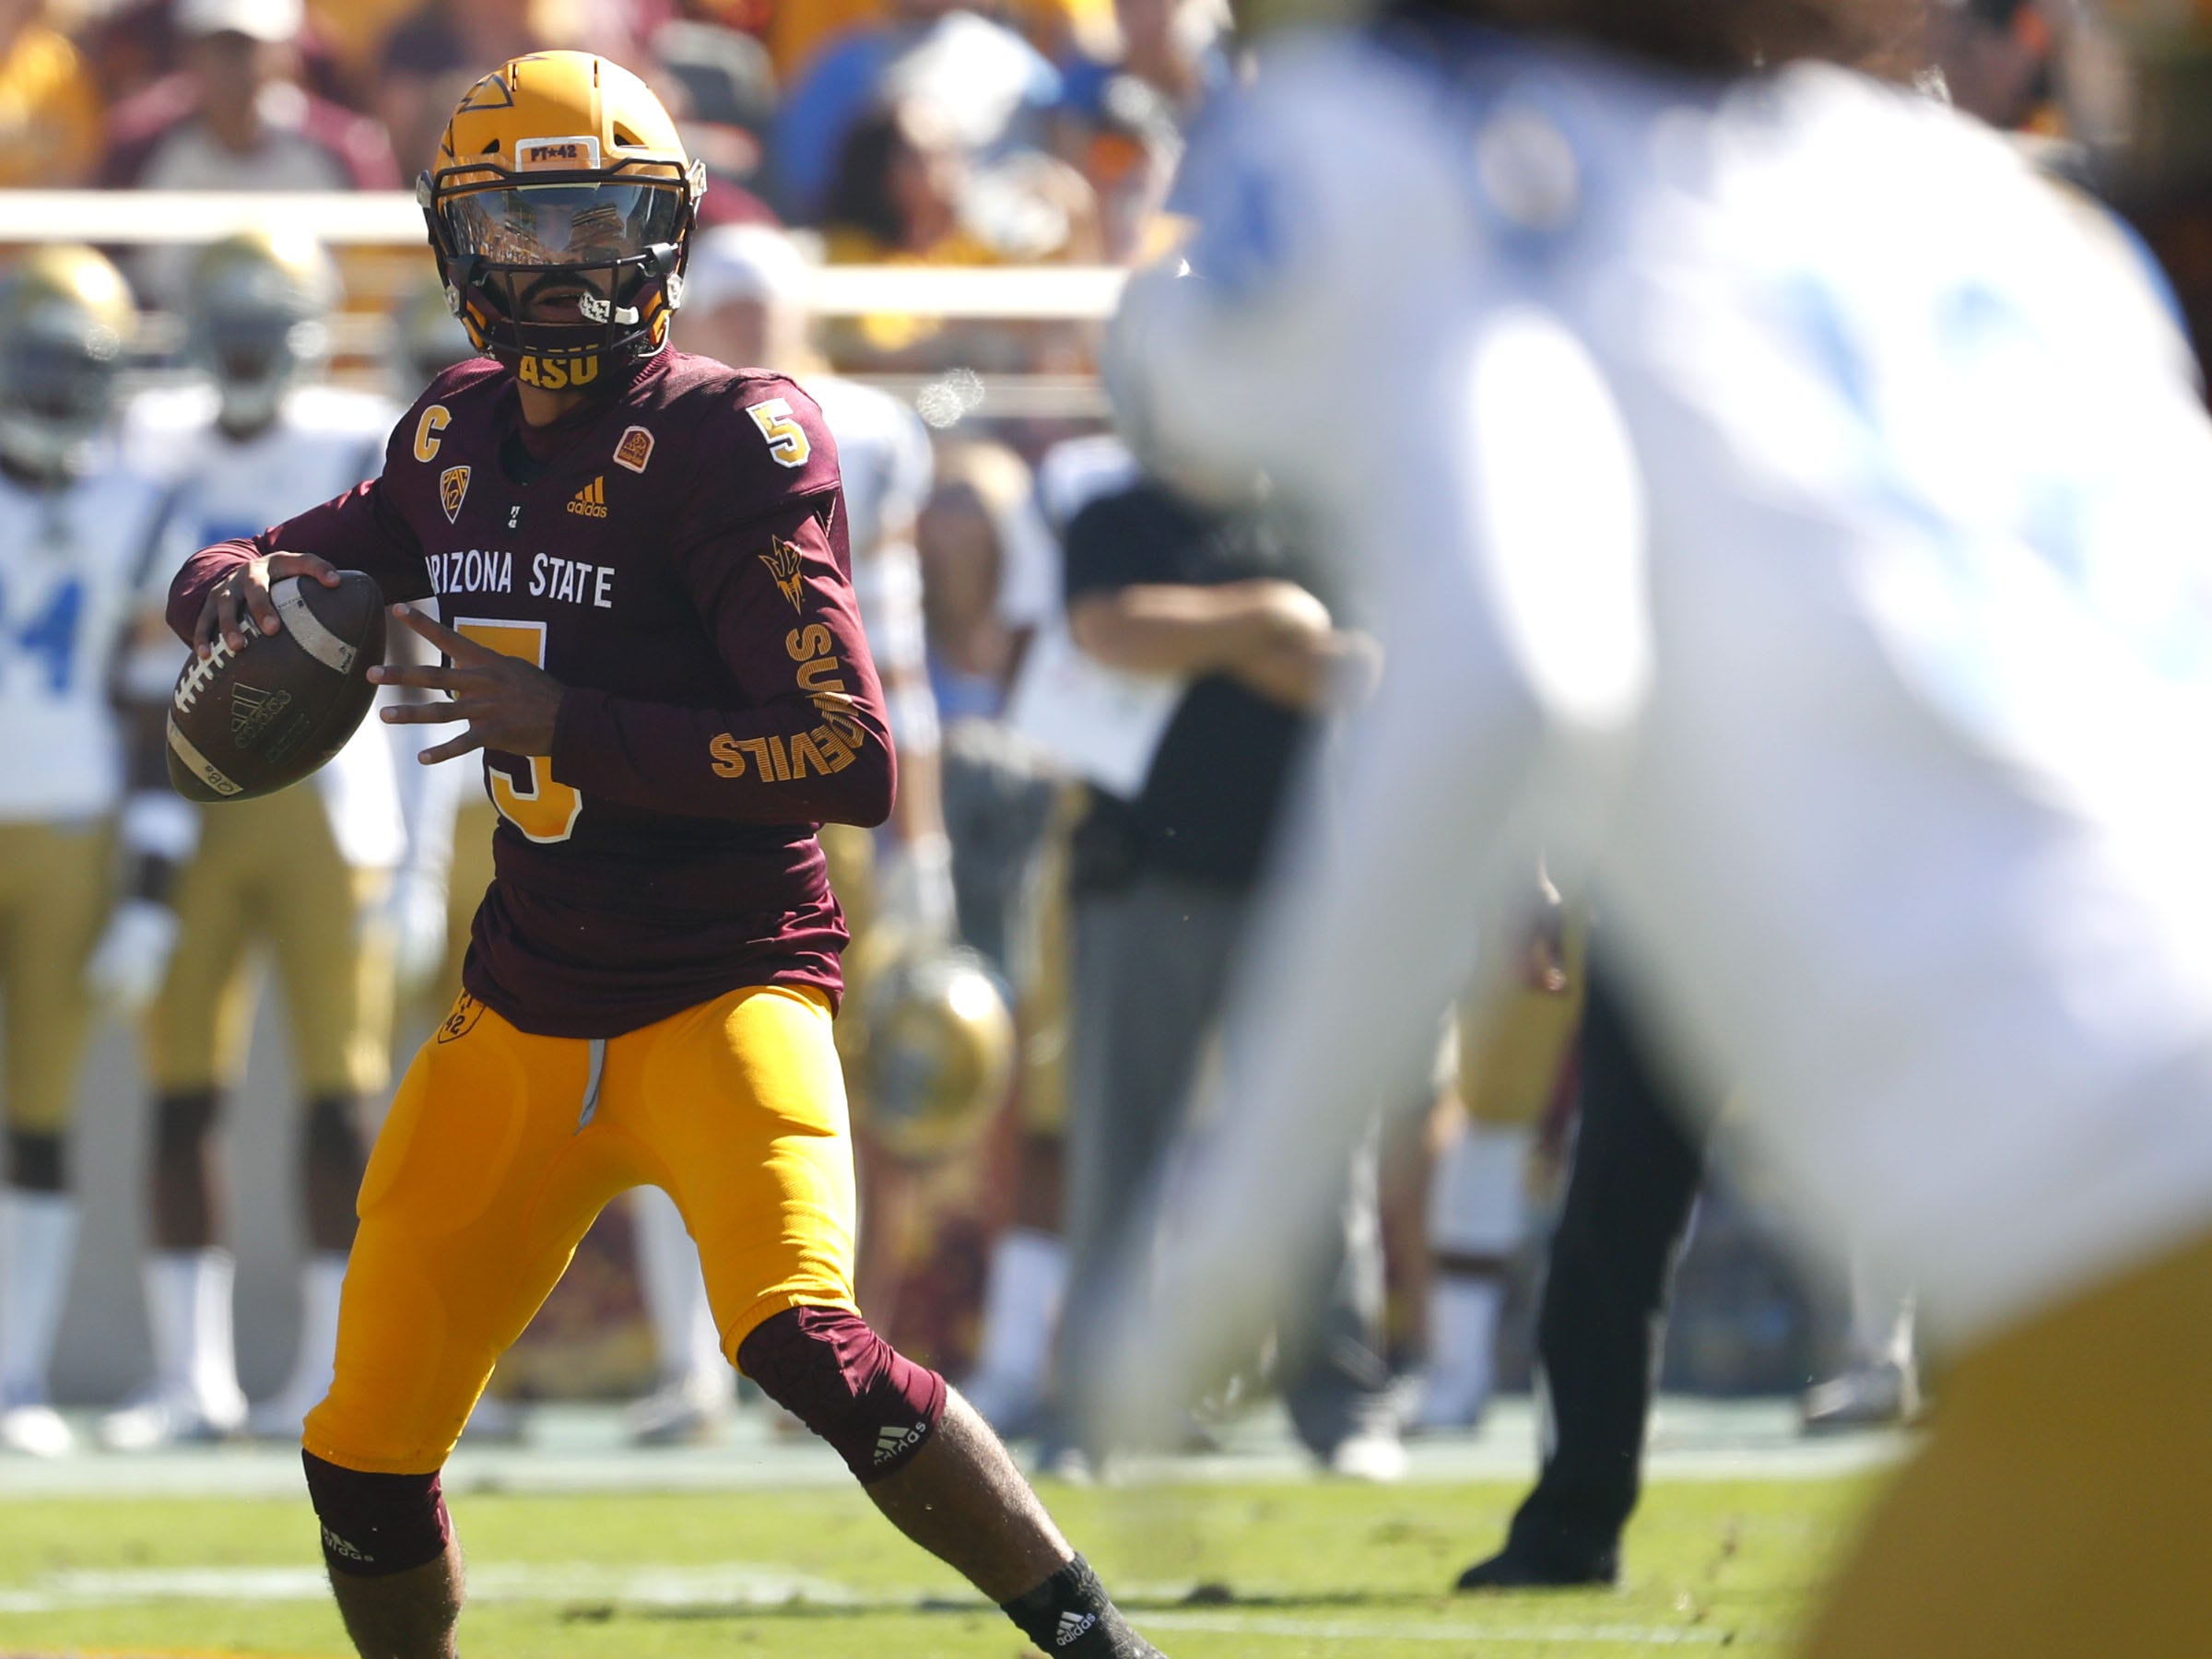 ASU's Manny Wilkins (5) looks for receivers against UCLA during the first half at Sun Devil Stadium in Tempe, Ariz. on November 10, 2018.